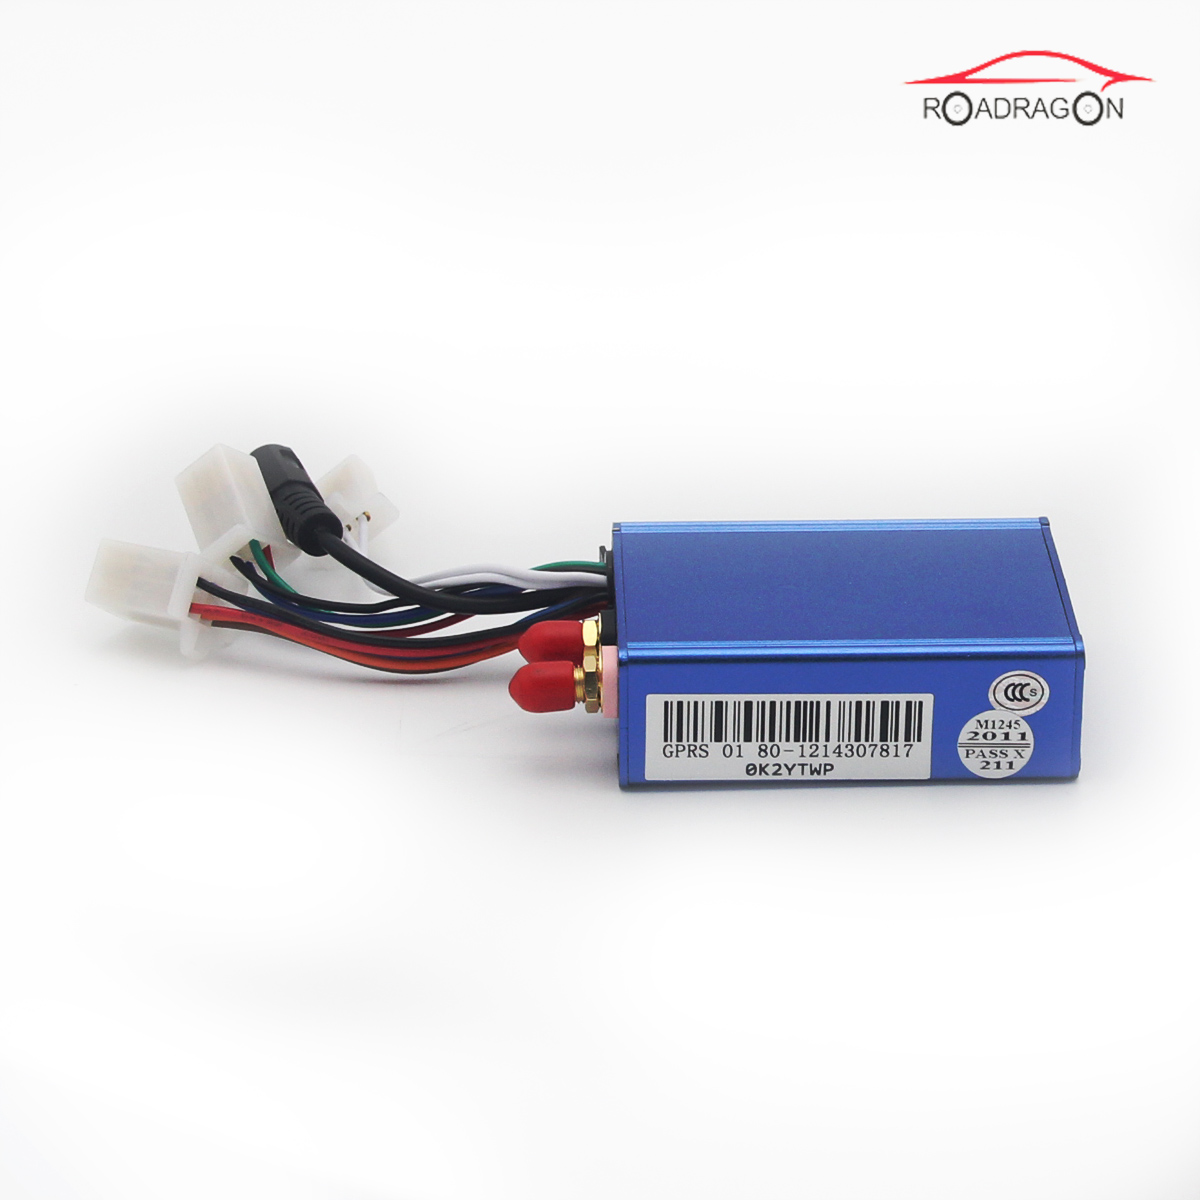 G- V288 multifunctional gps module for vehicle tracking Featured Image